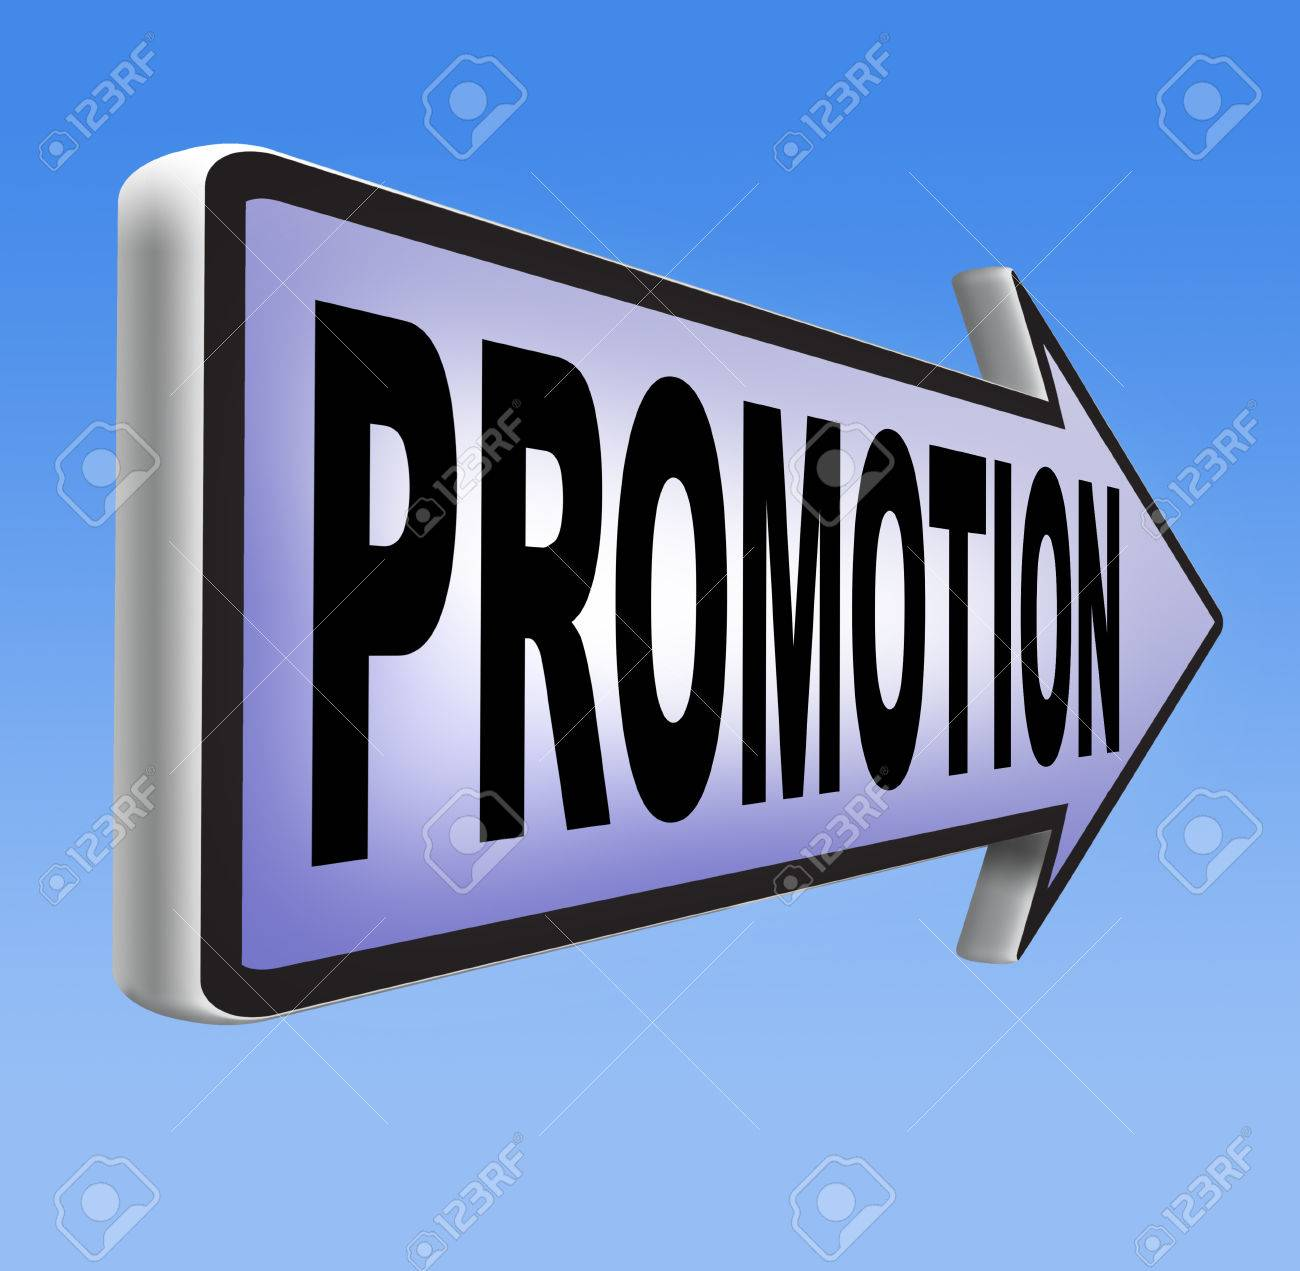 job promotion or product s promotion stock photo picture and stock photo job promotion or product s promotion